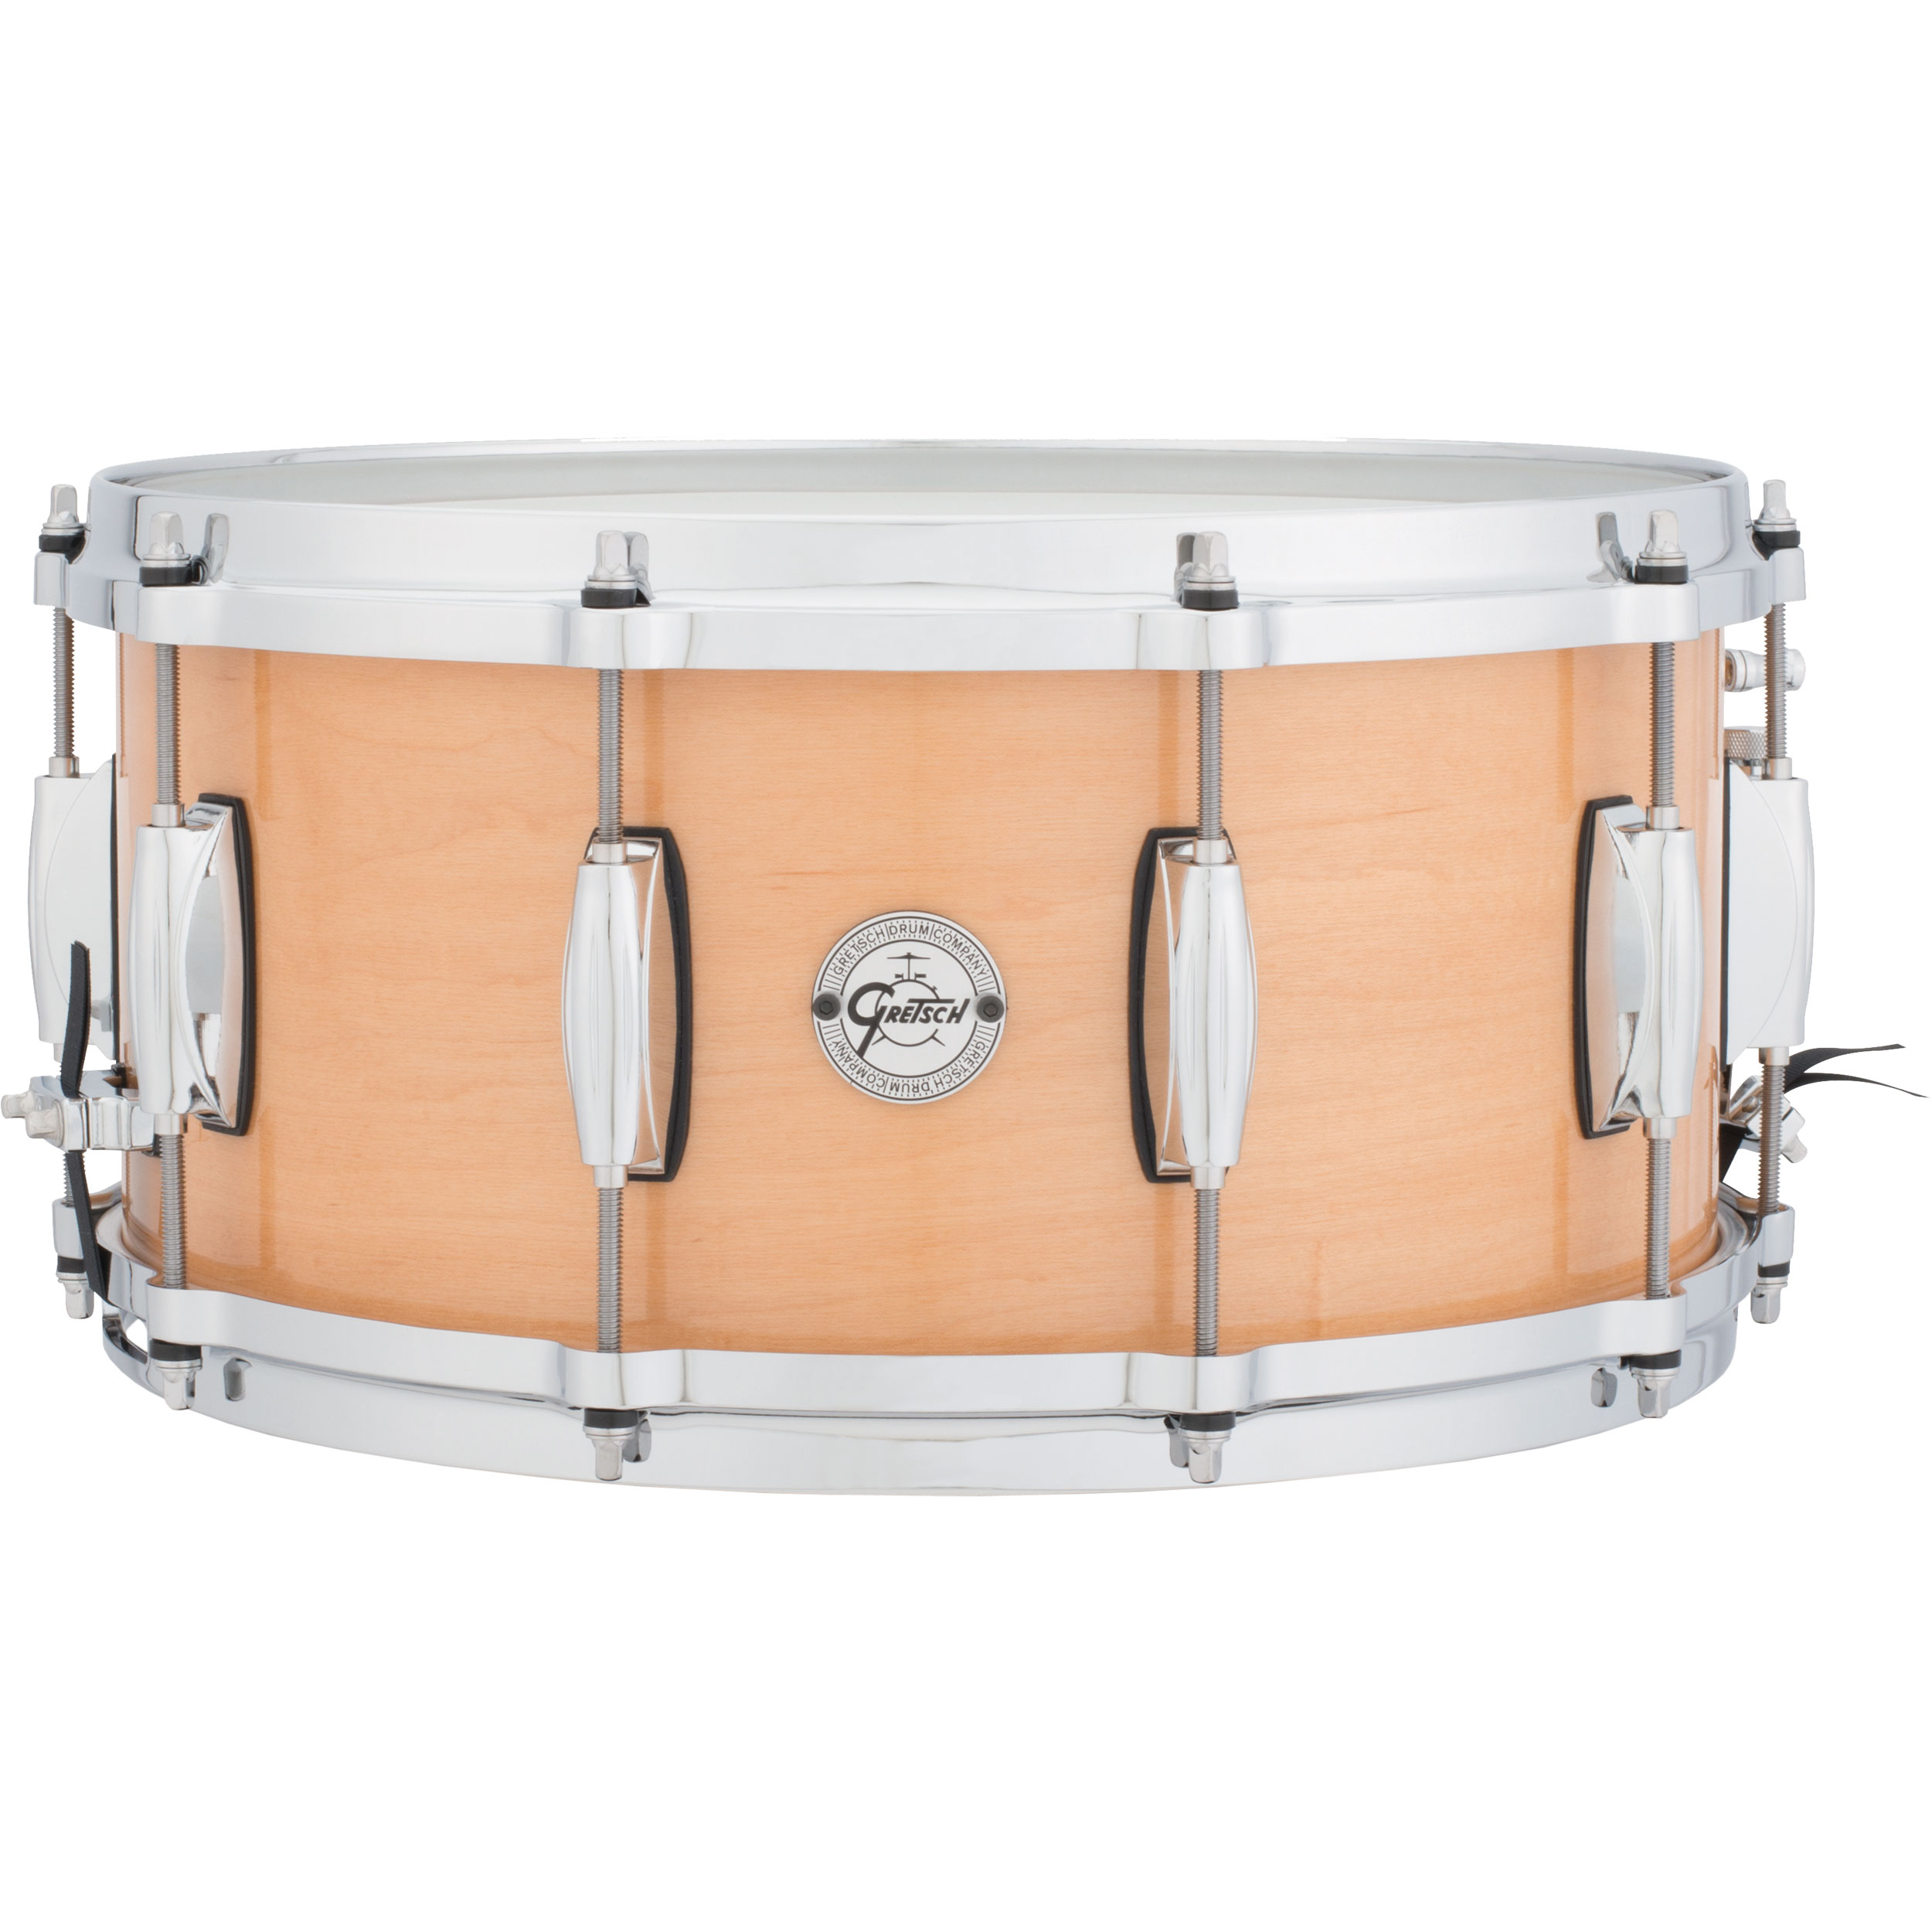 "Gretsch 6.5"" x 14"" Silver Series Maple Snare Drum"